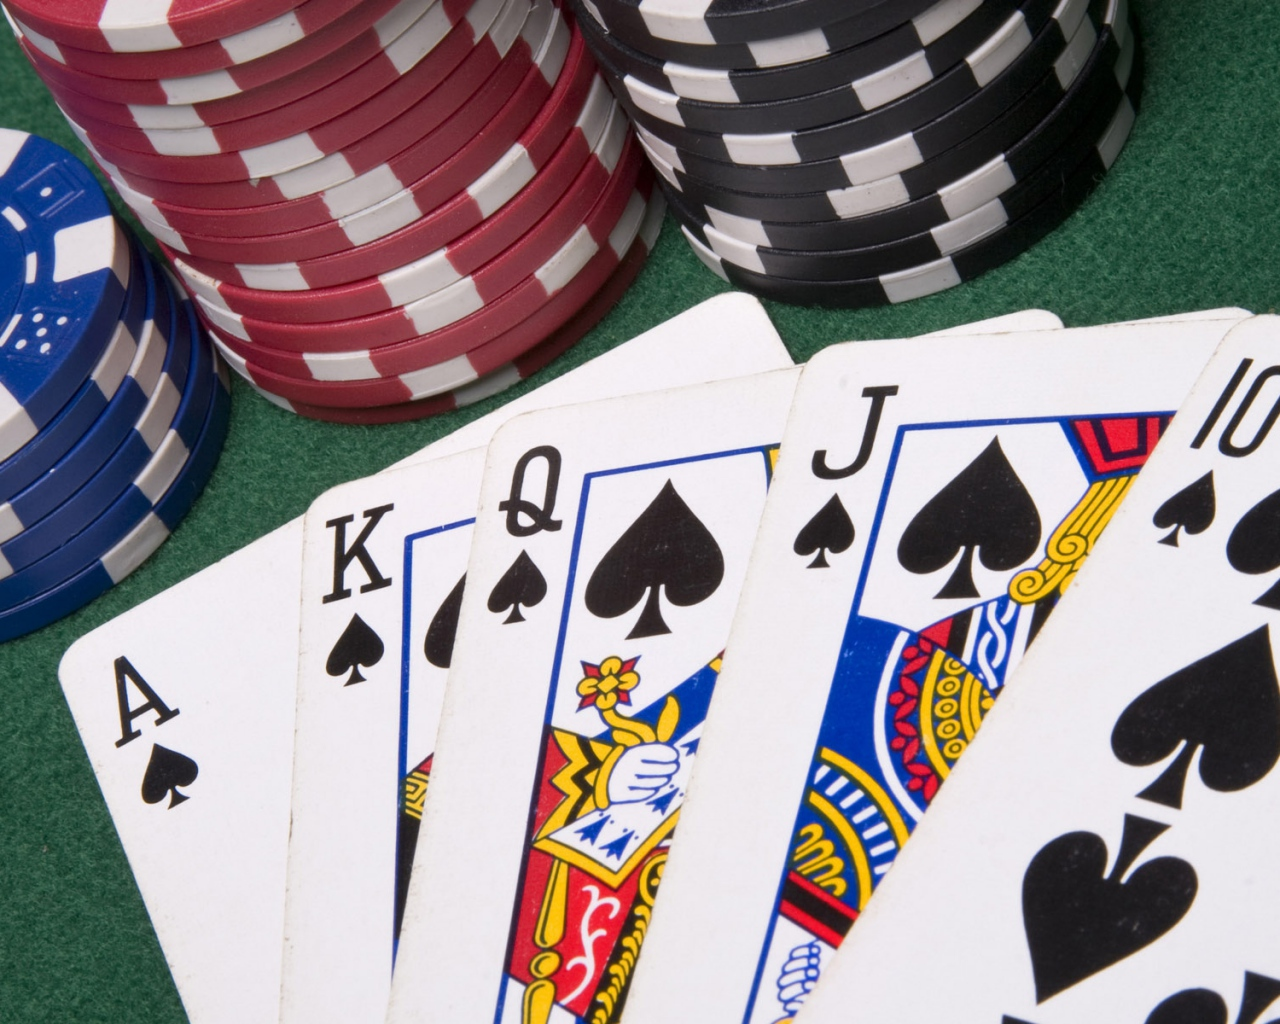 Pokerace99 – Why Should You   Play Poker With Concentration?